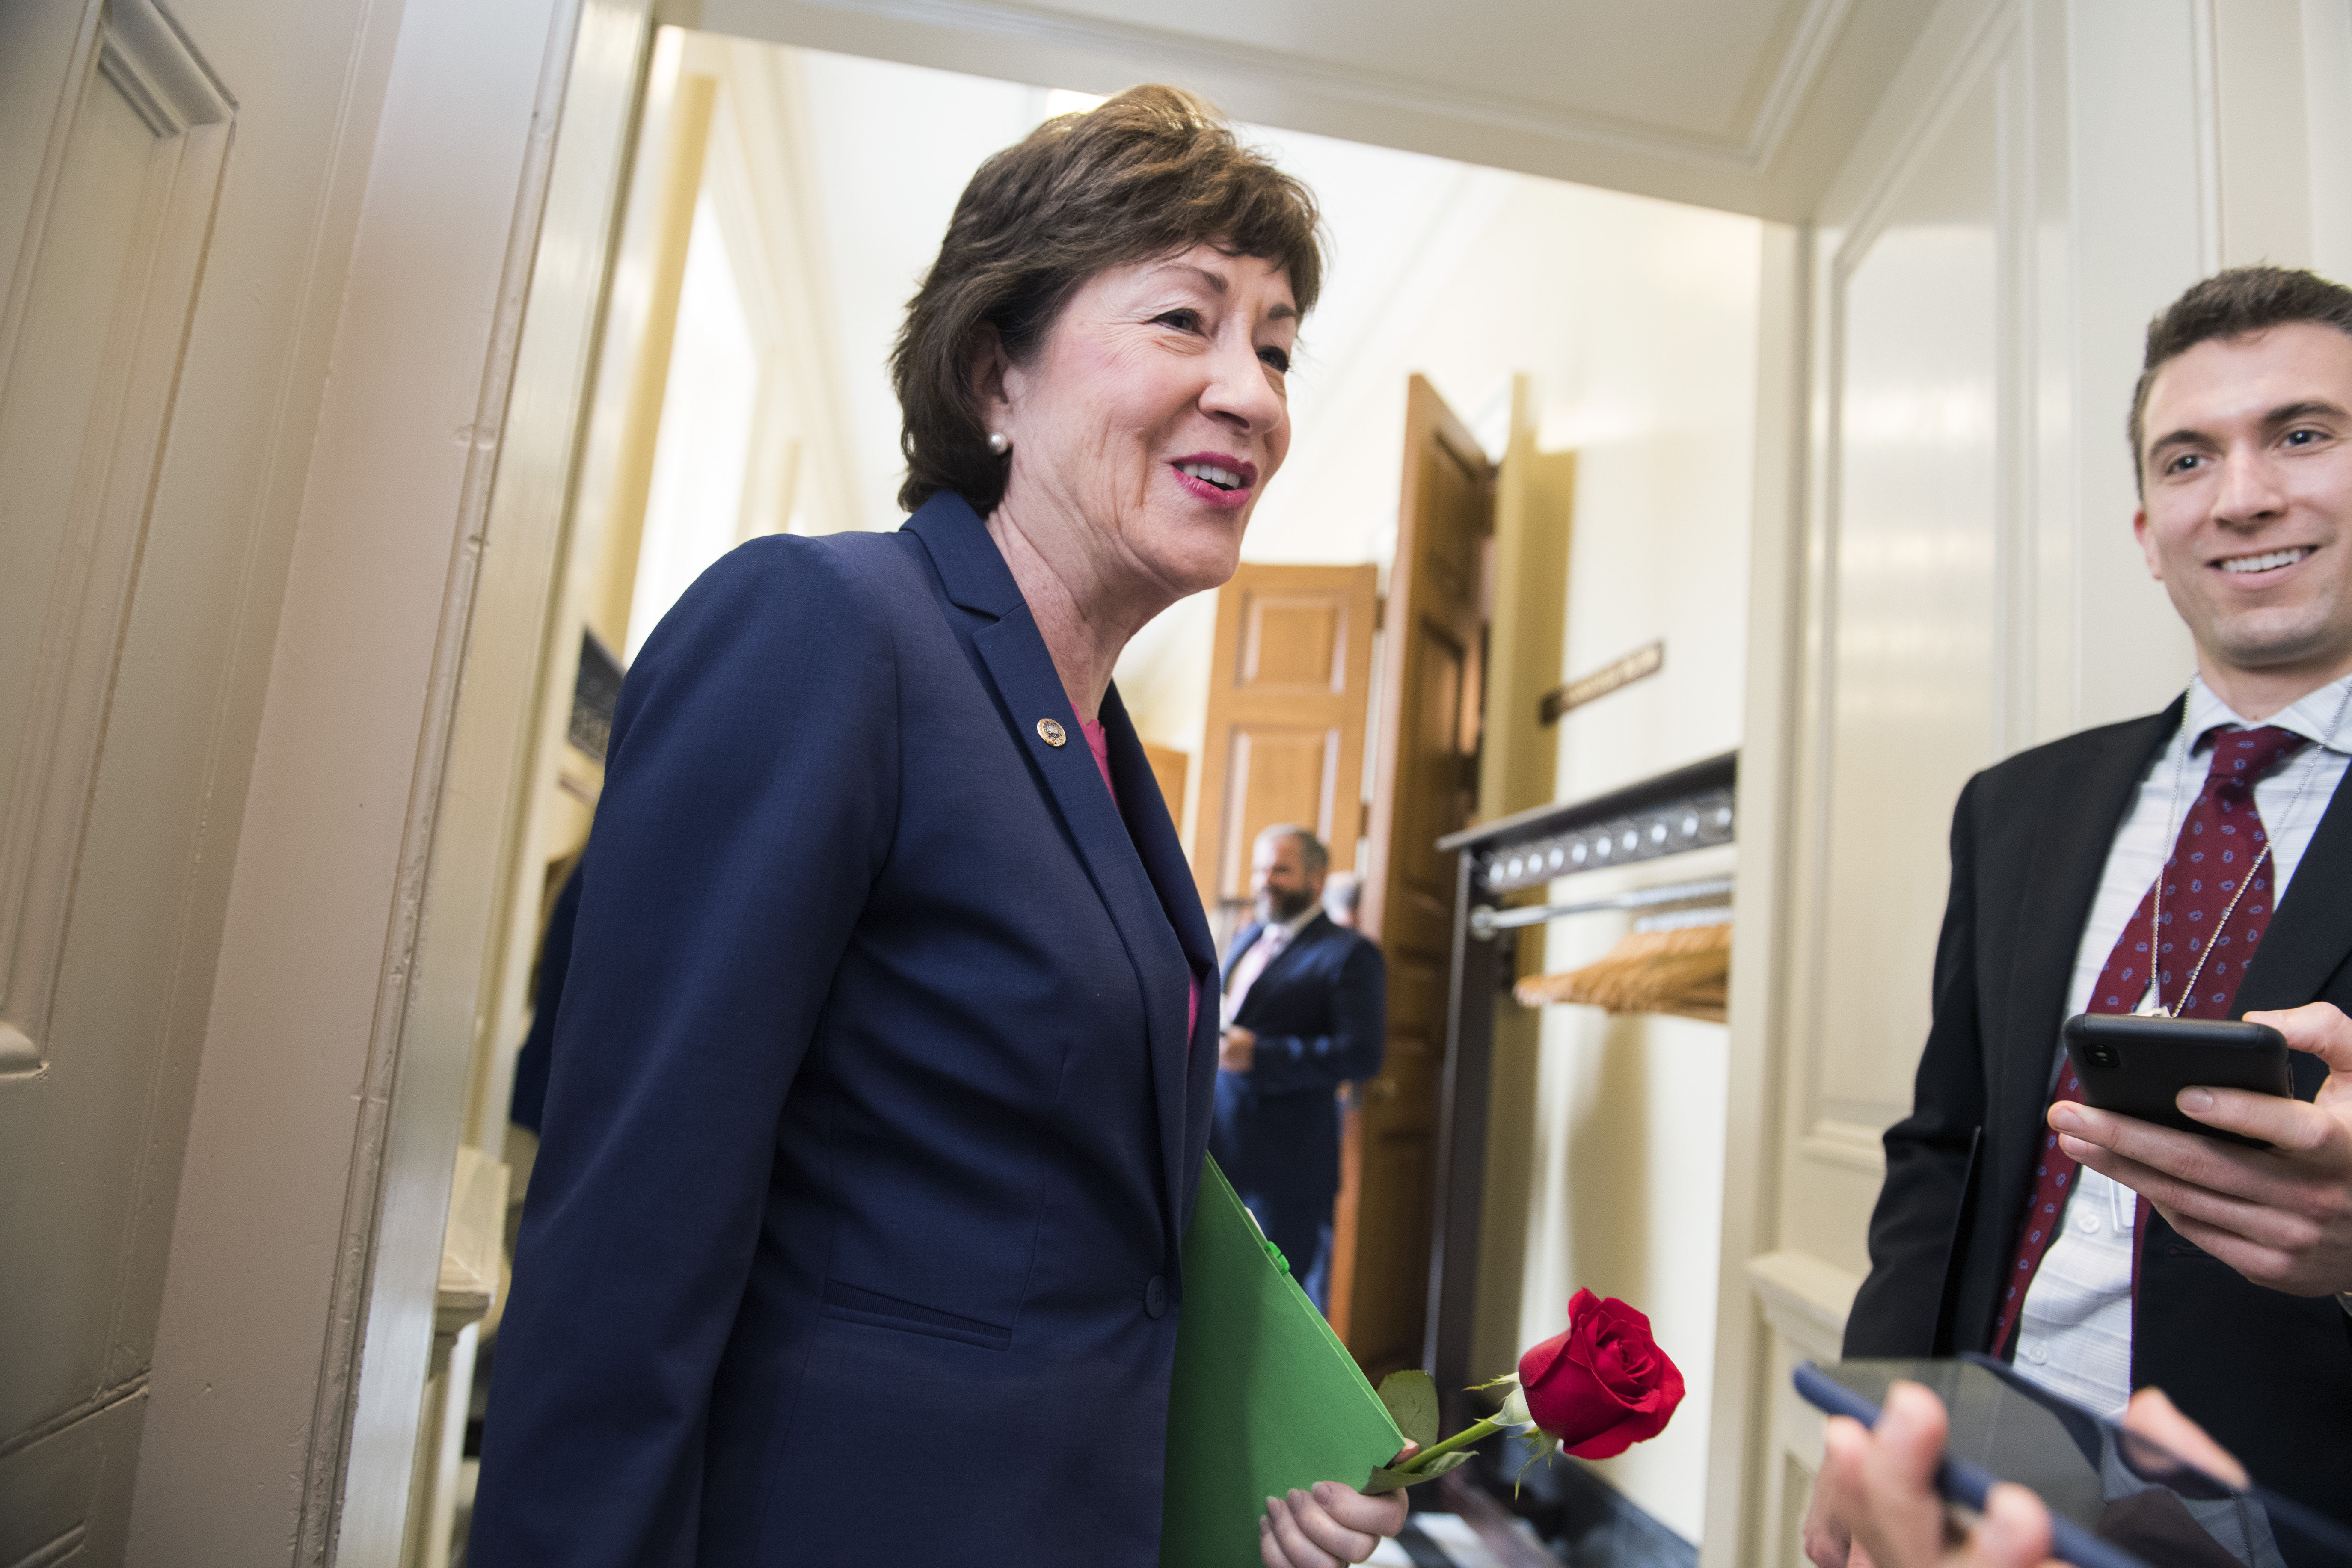 UNITED STATES - JUNE 18: Sen. Susan Collins, R-Maine, talks with a reporter before the Senate Policy luncheons in the Capitol on Tuesday, June 18, 2019. (Photo By Tom Williams/CQ Roll Call)